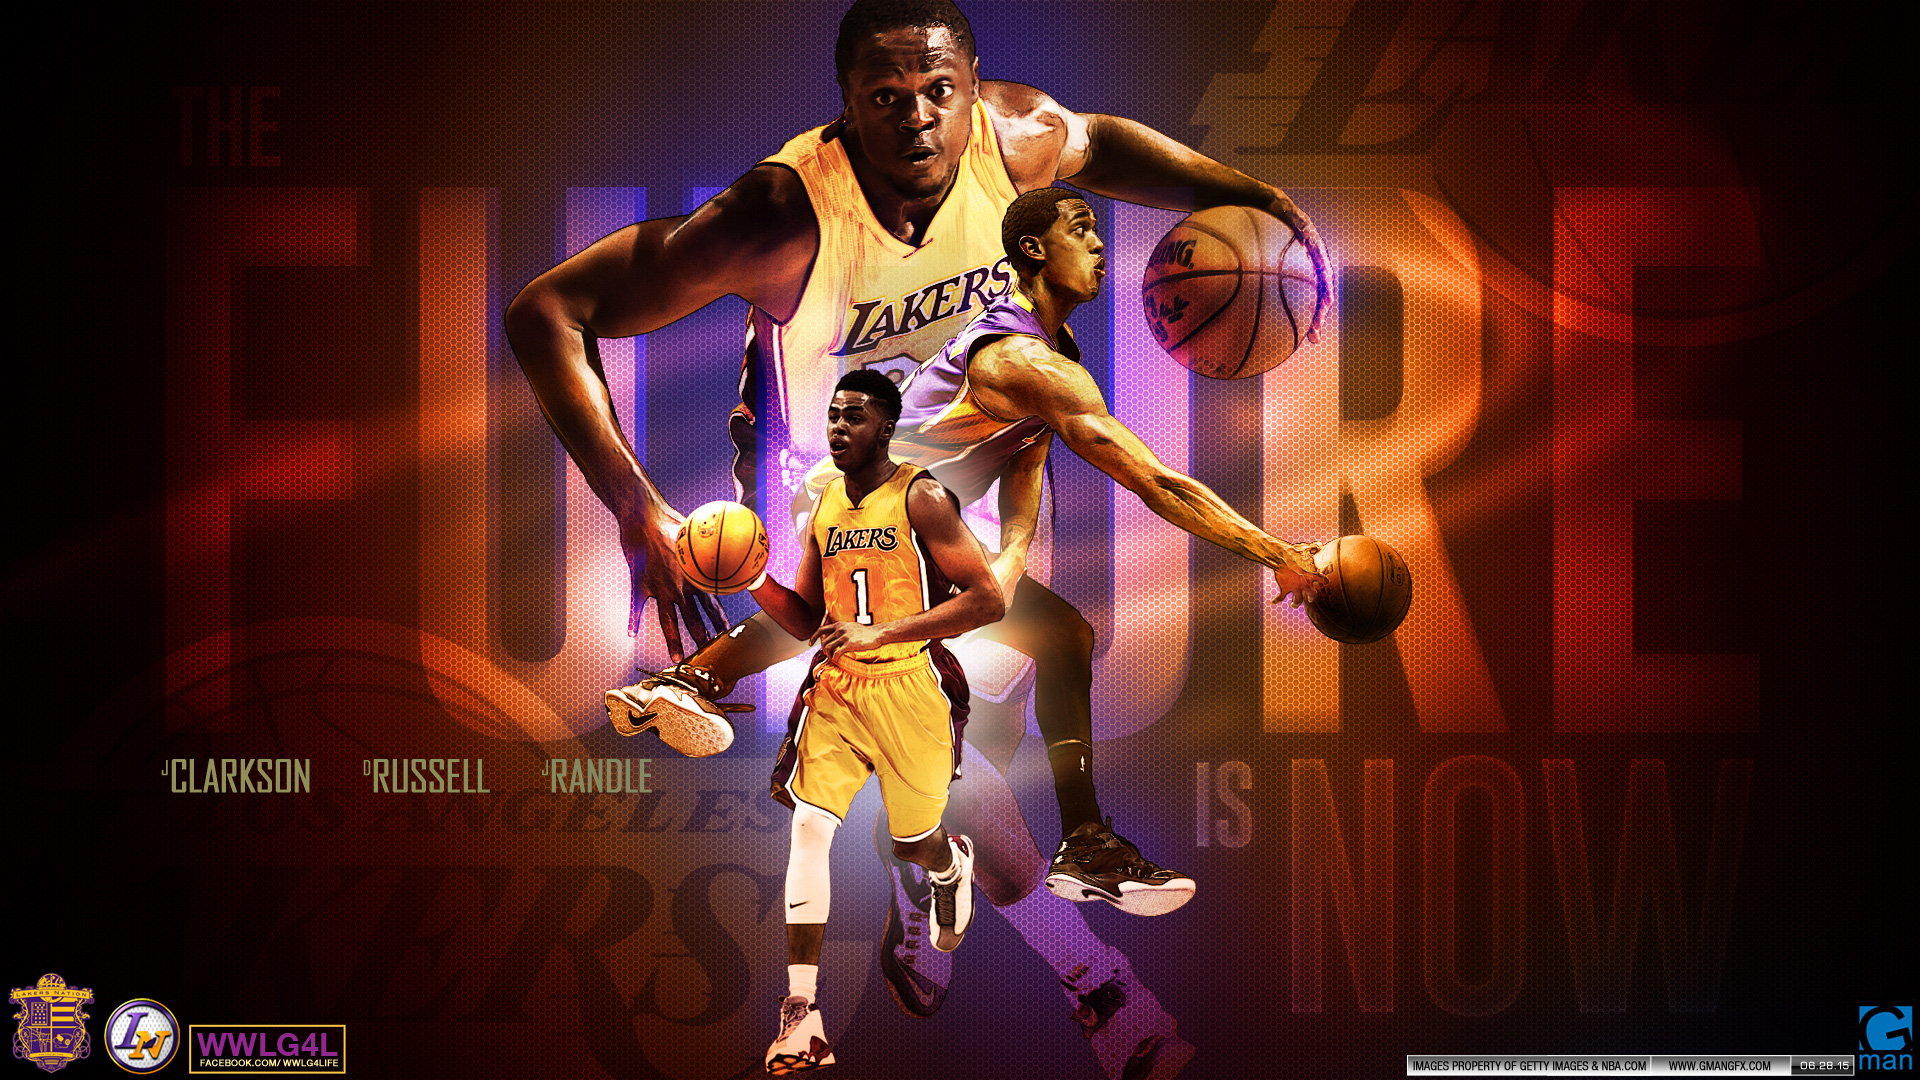 LA Lakers Future 2015 Wallpaper